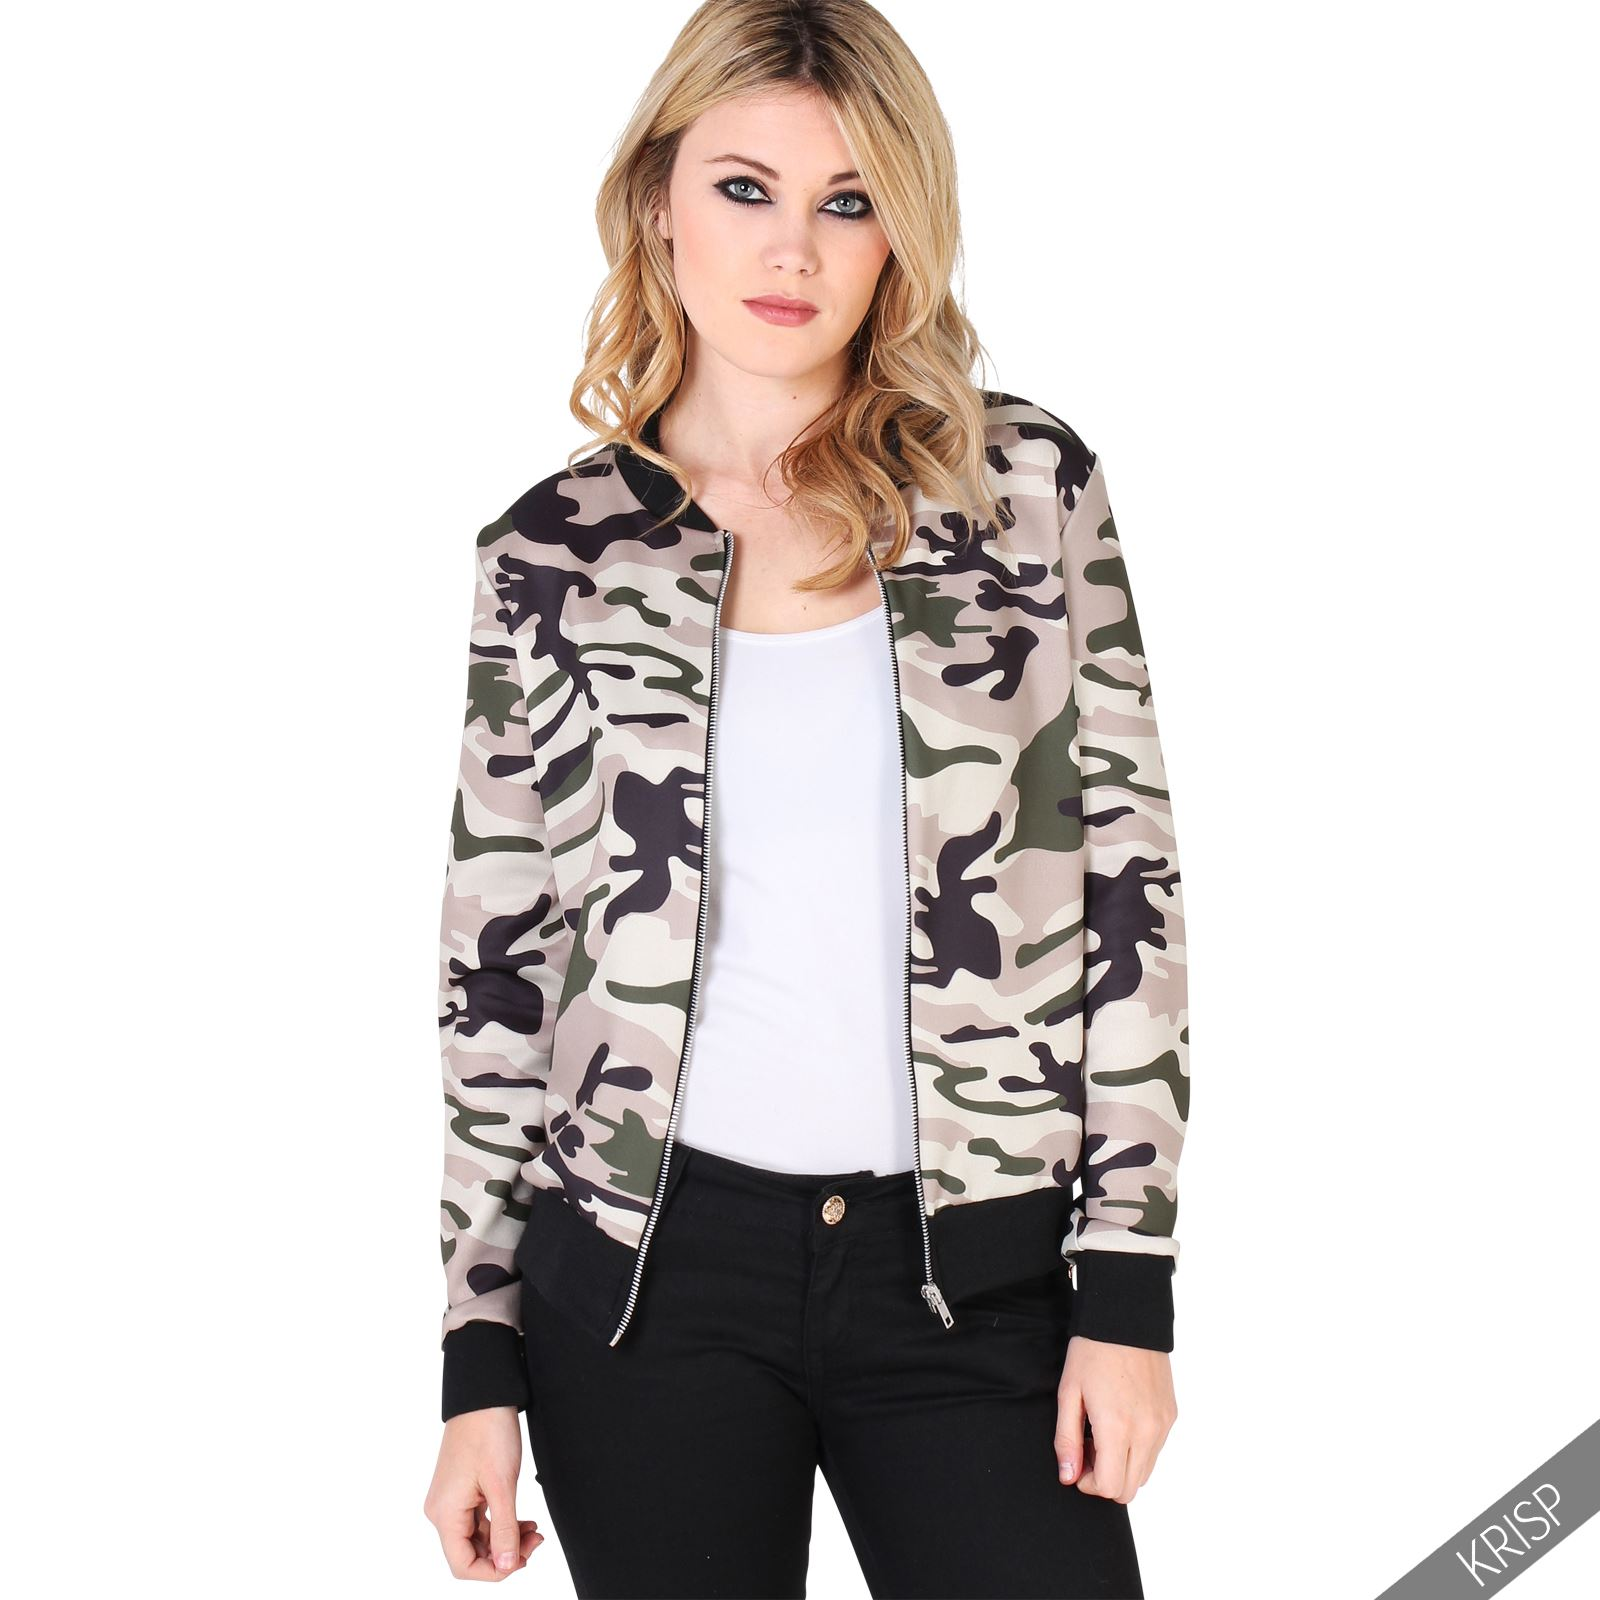 femmes veste blouson l ger camouflage imprim zipp bomber pilotes court ebay. Black Bedroom Furniture Sets. Home Design Ideas